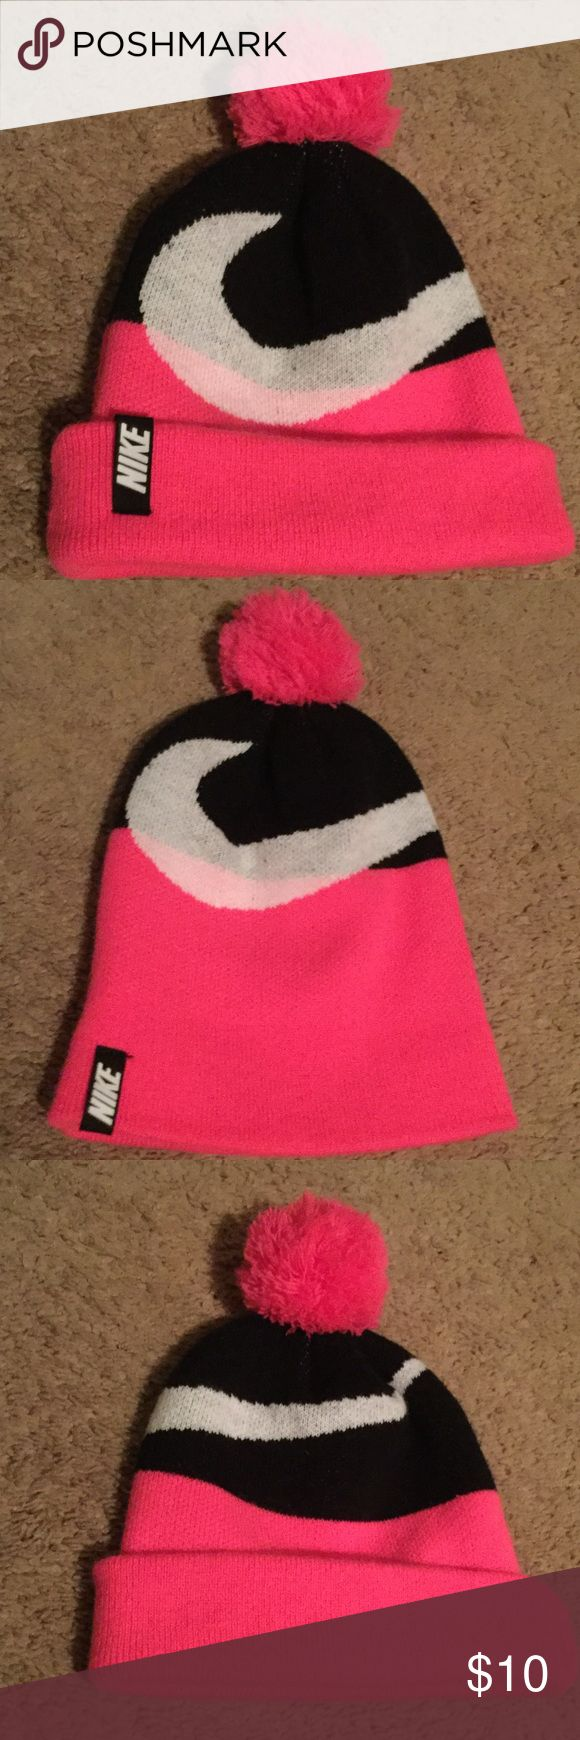 Nike girls winter hat Nike girls winter hat. Brand-new and never worn. Nike Accessories Hats